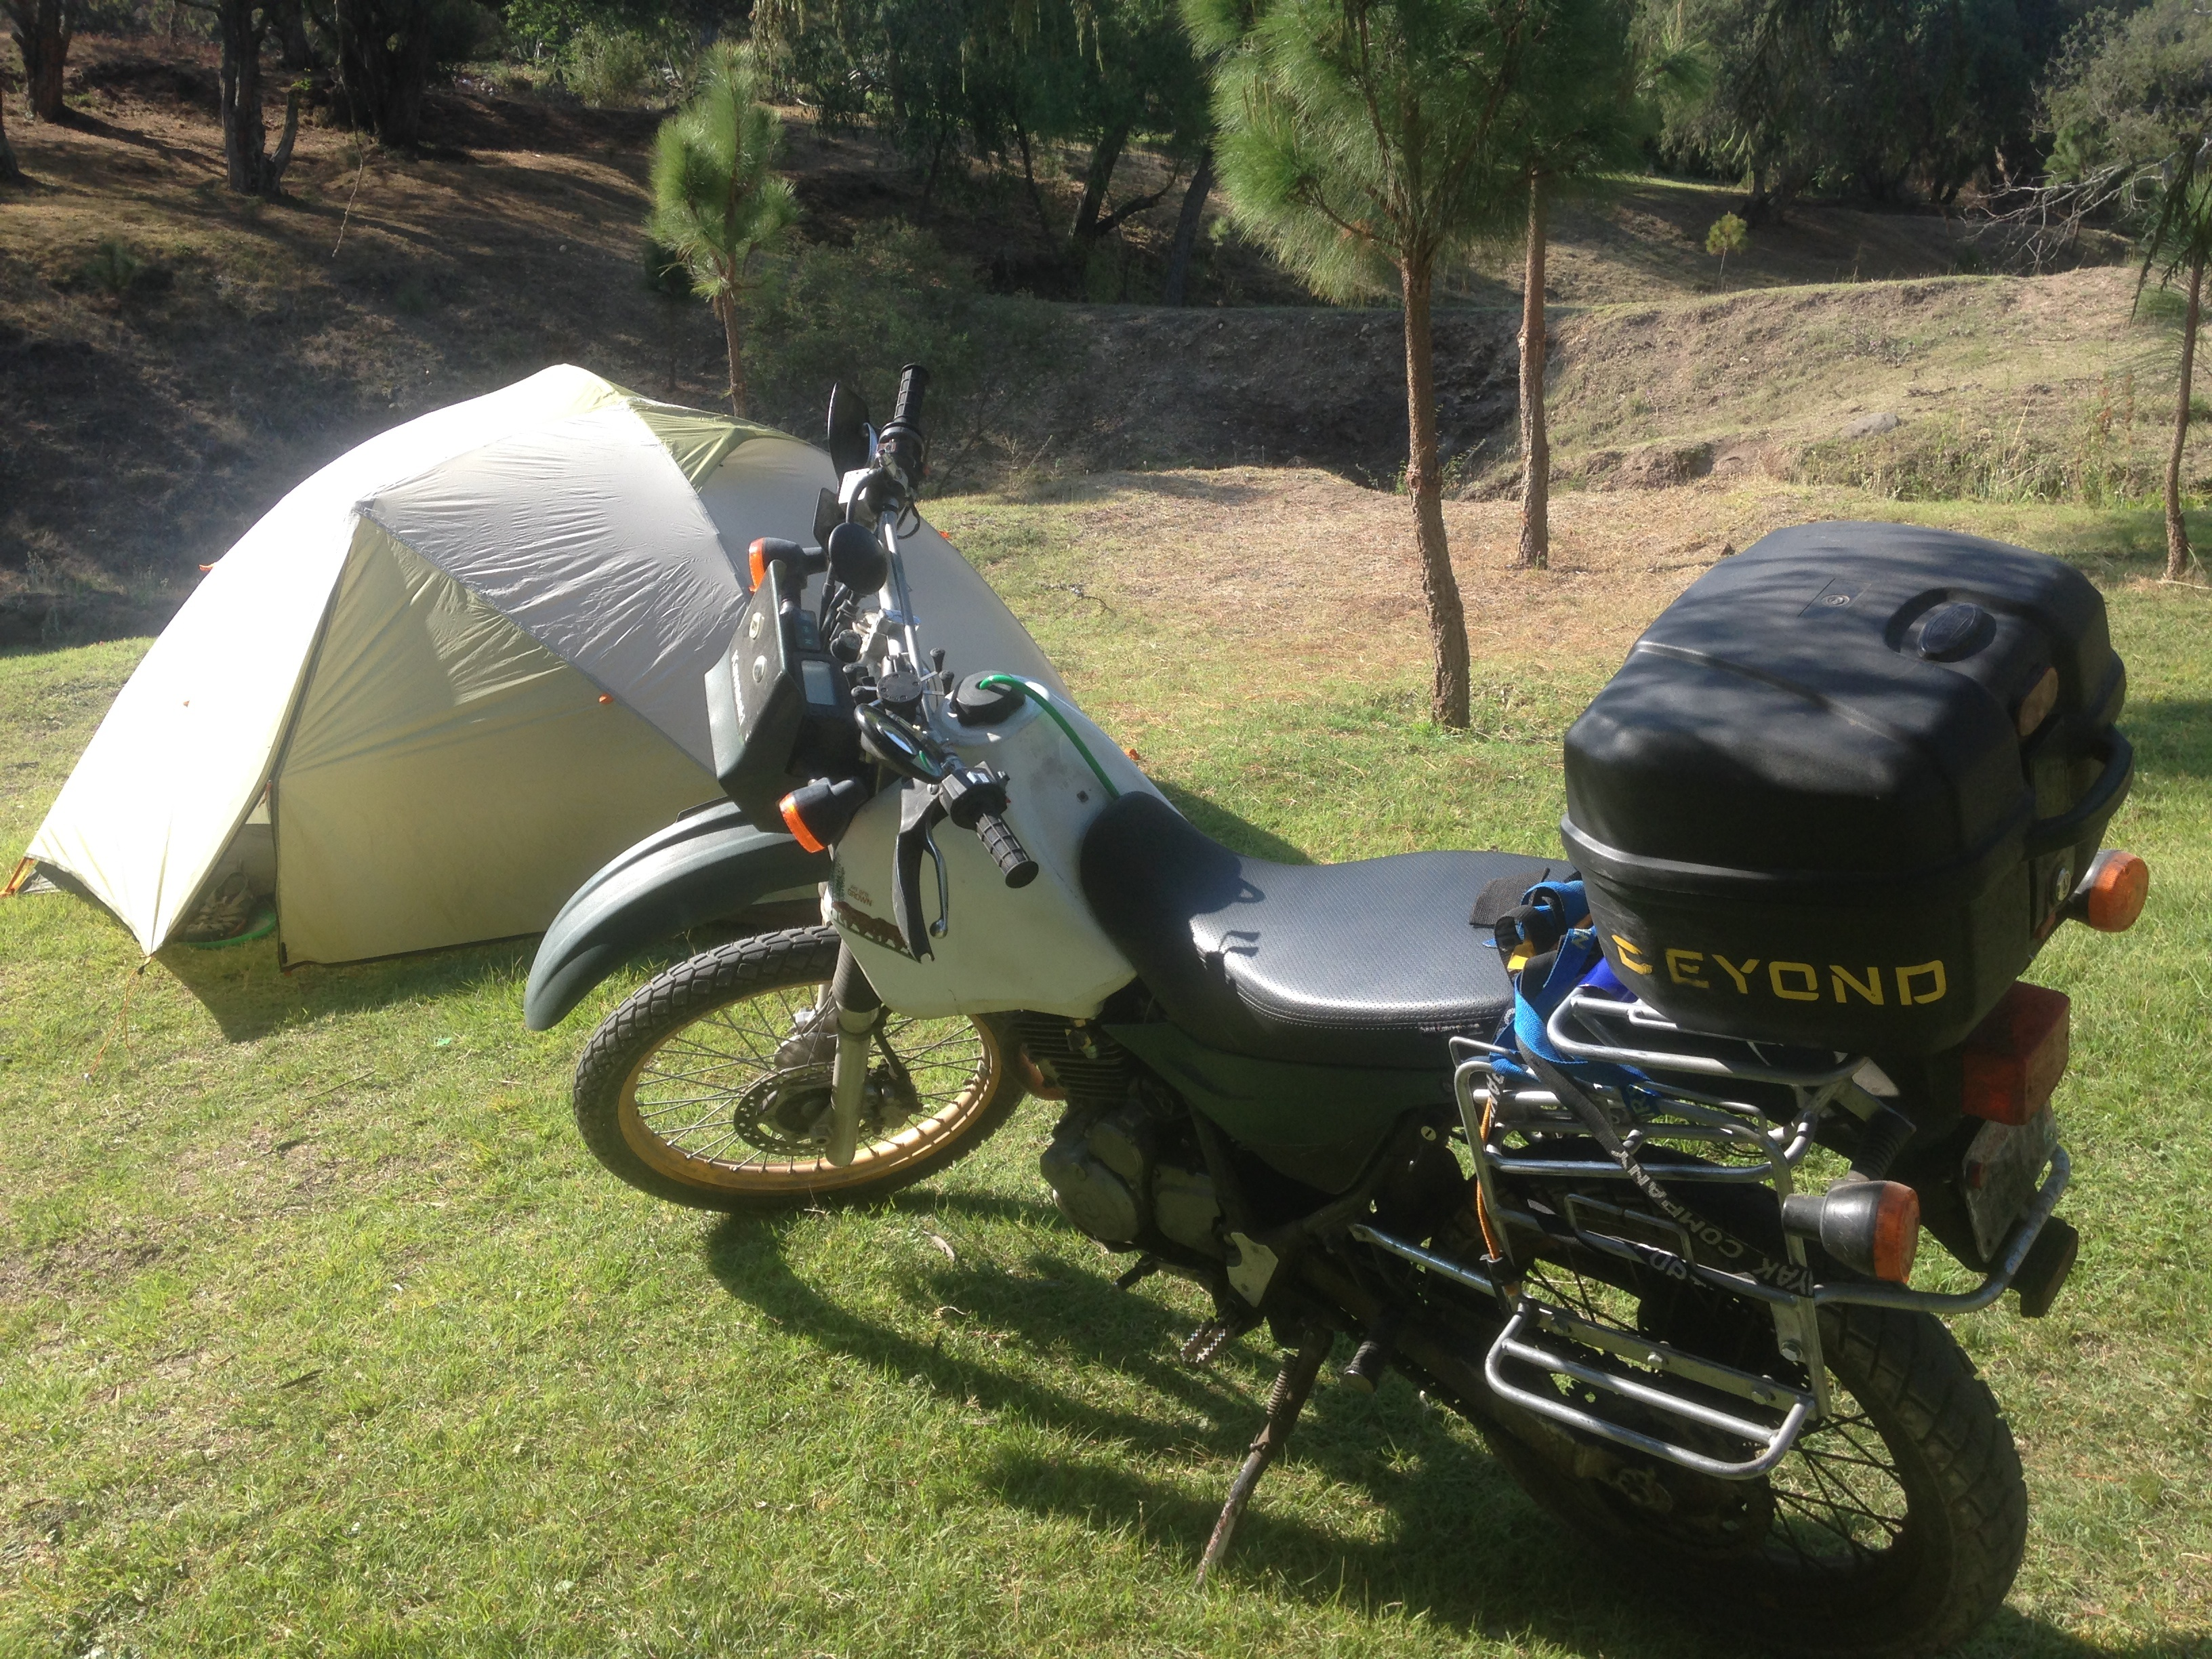 A perfect combo, adventure bike and tent!